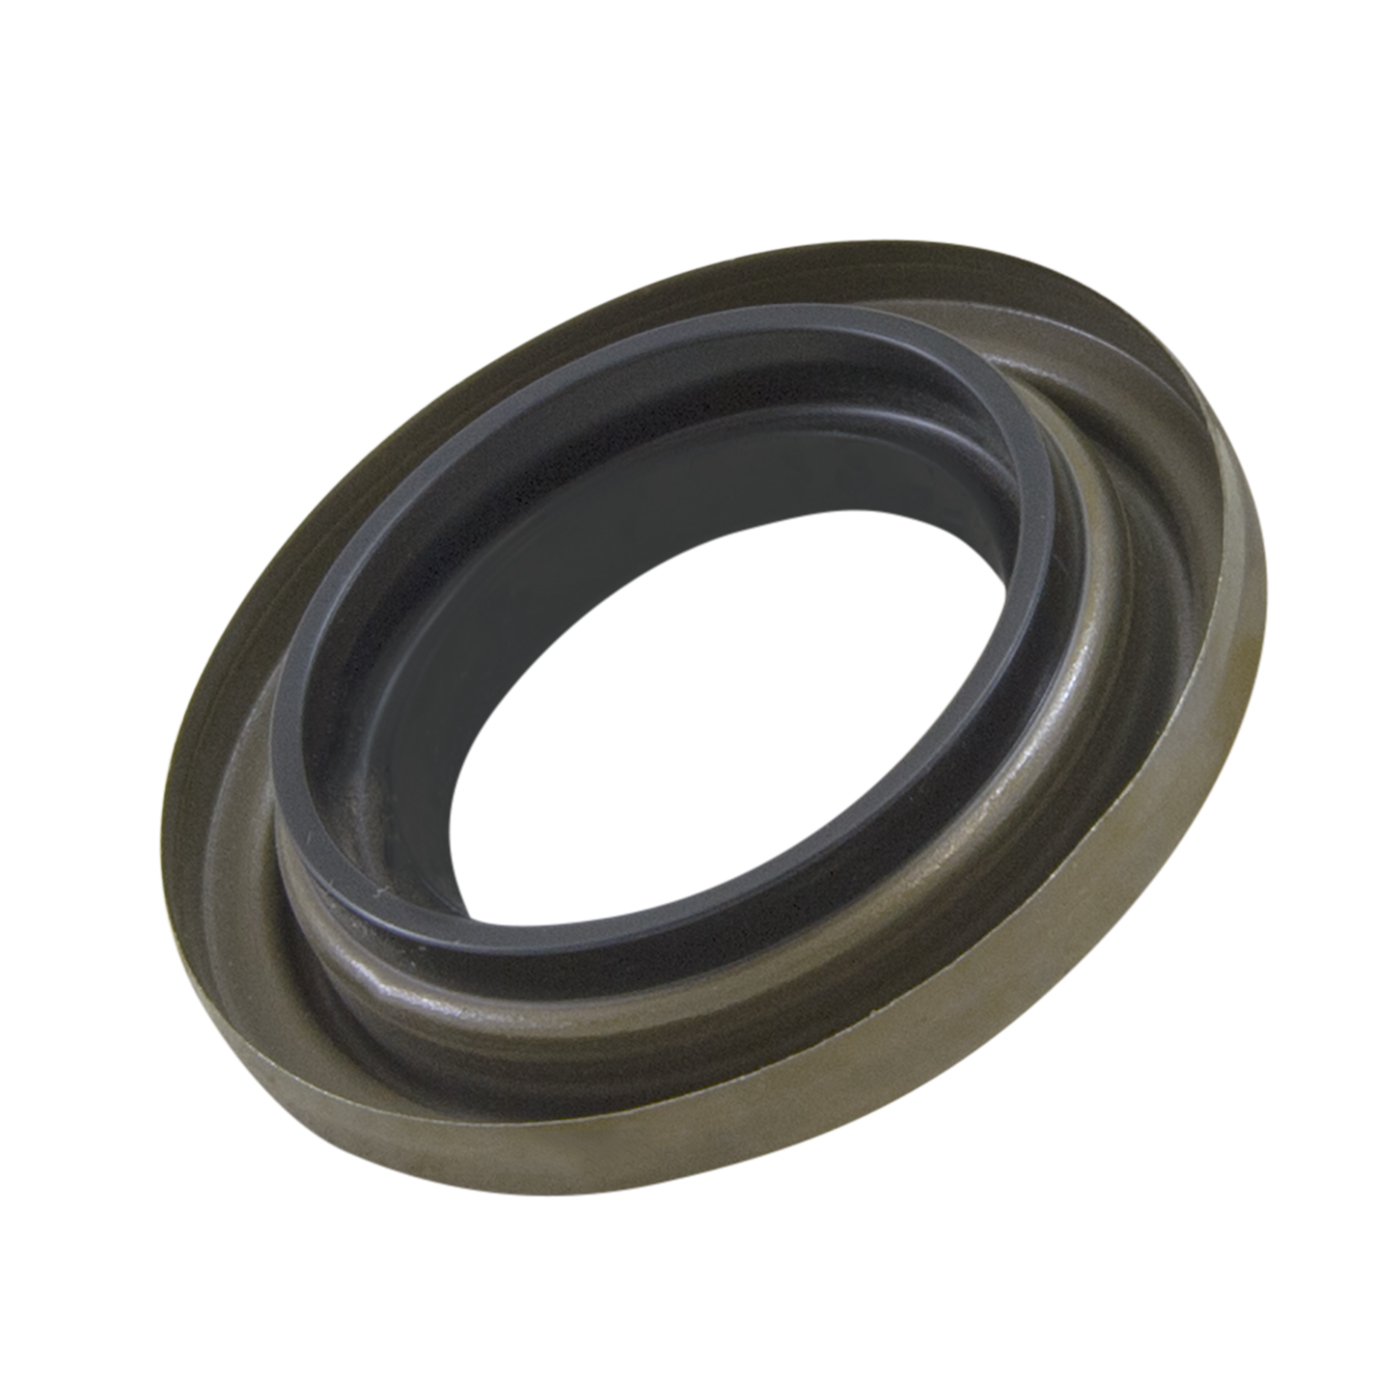 YMSS1003 - Replacement pinion seal for Dana 28